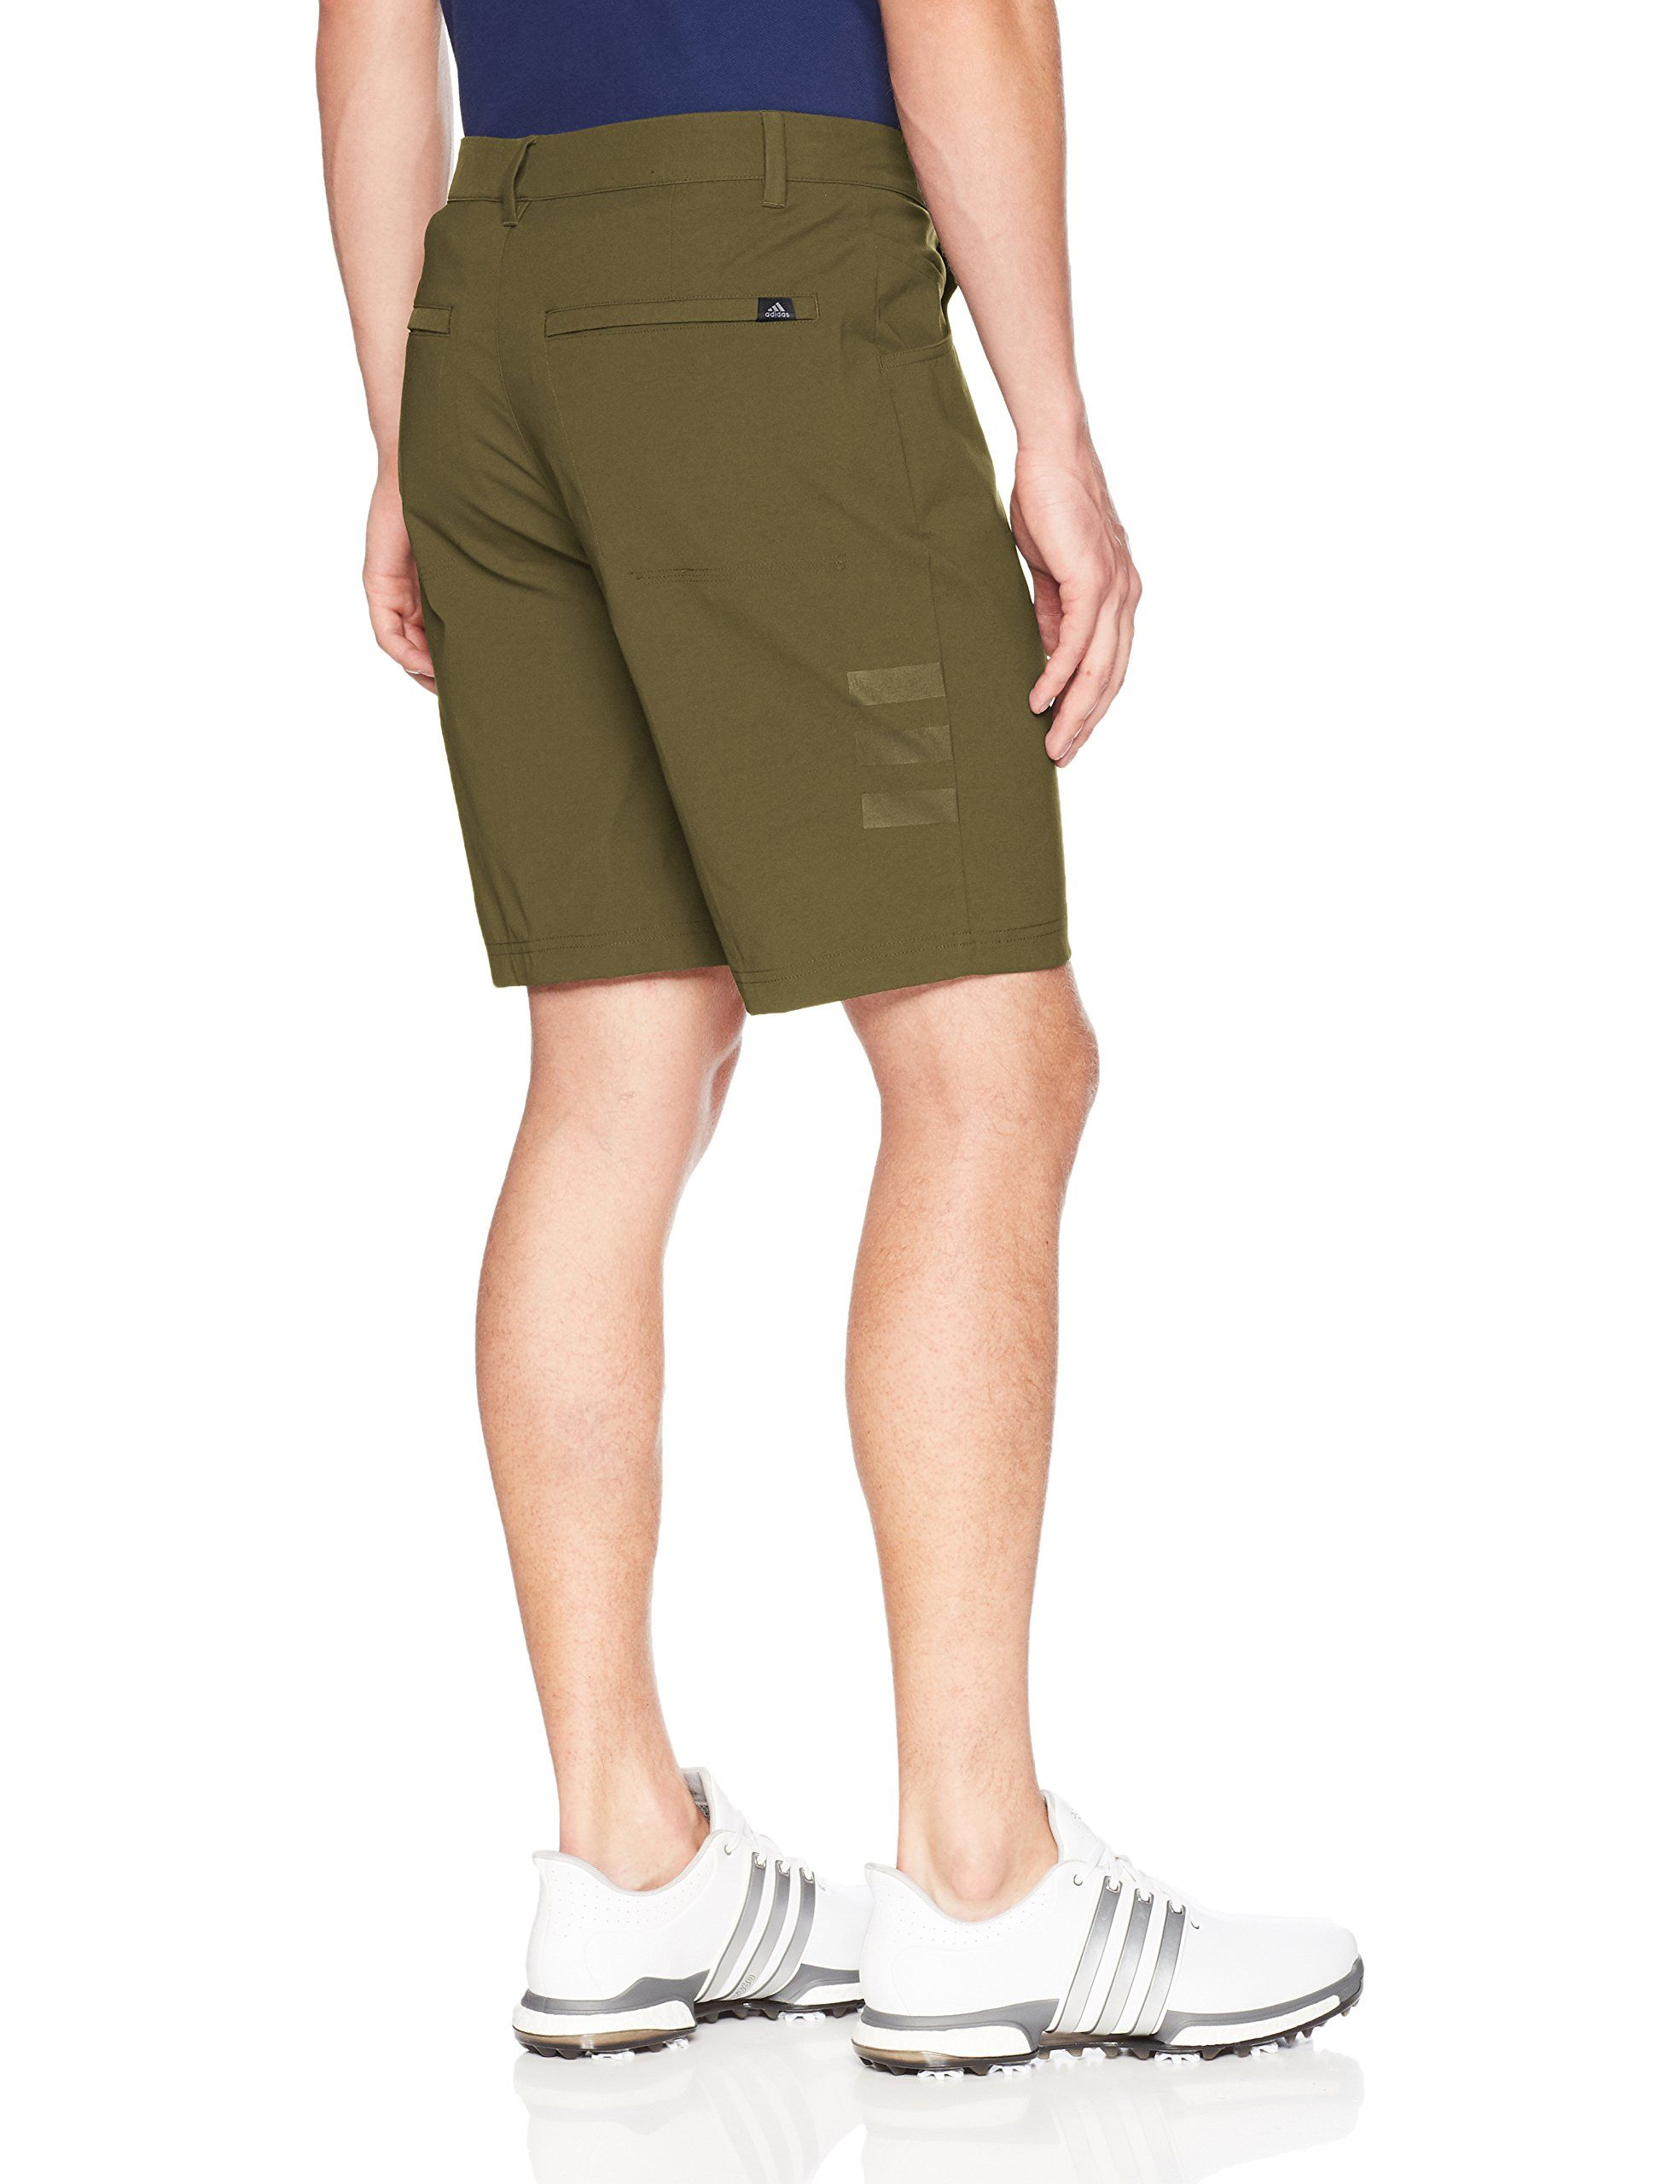 13d455e35cb Golf Clothing     adidas Golf Mens Adicross 5Pocket Shorts Olive Cargo 36  -- Click picture for even more information. (This is an affiliate link).